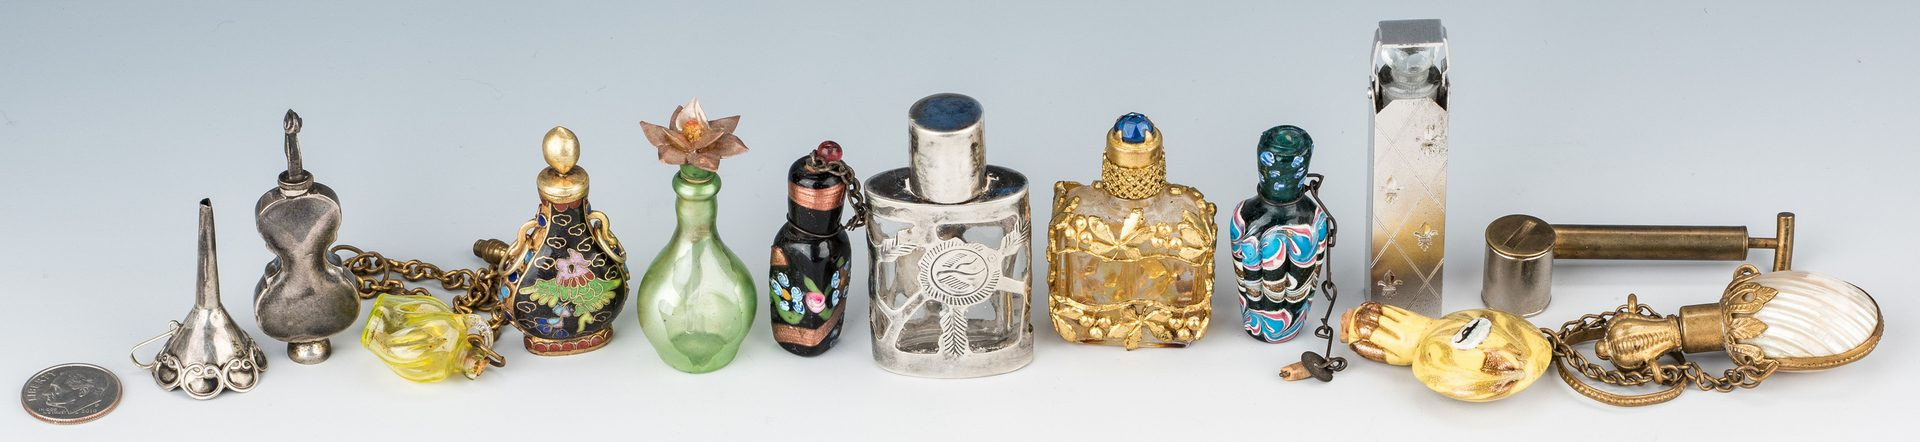 Lot 498: 13 Miniature Perfume Bottles, incl. Sterling Silver